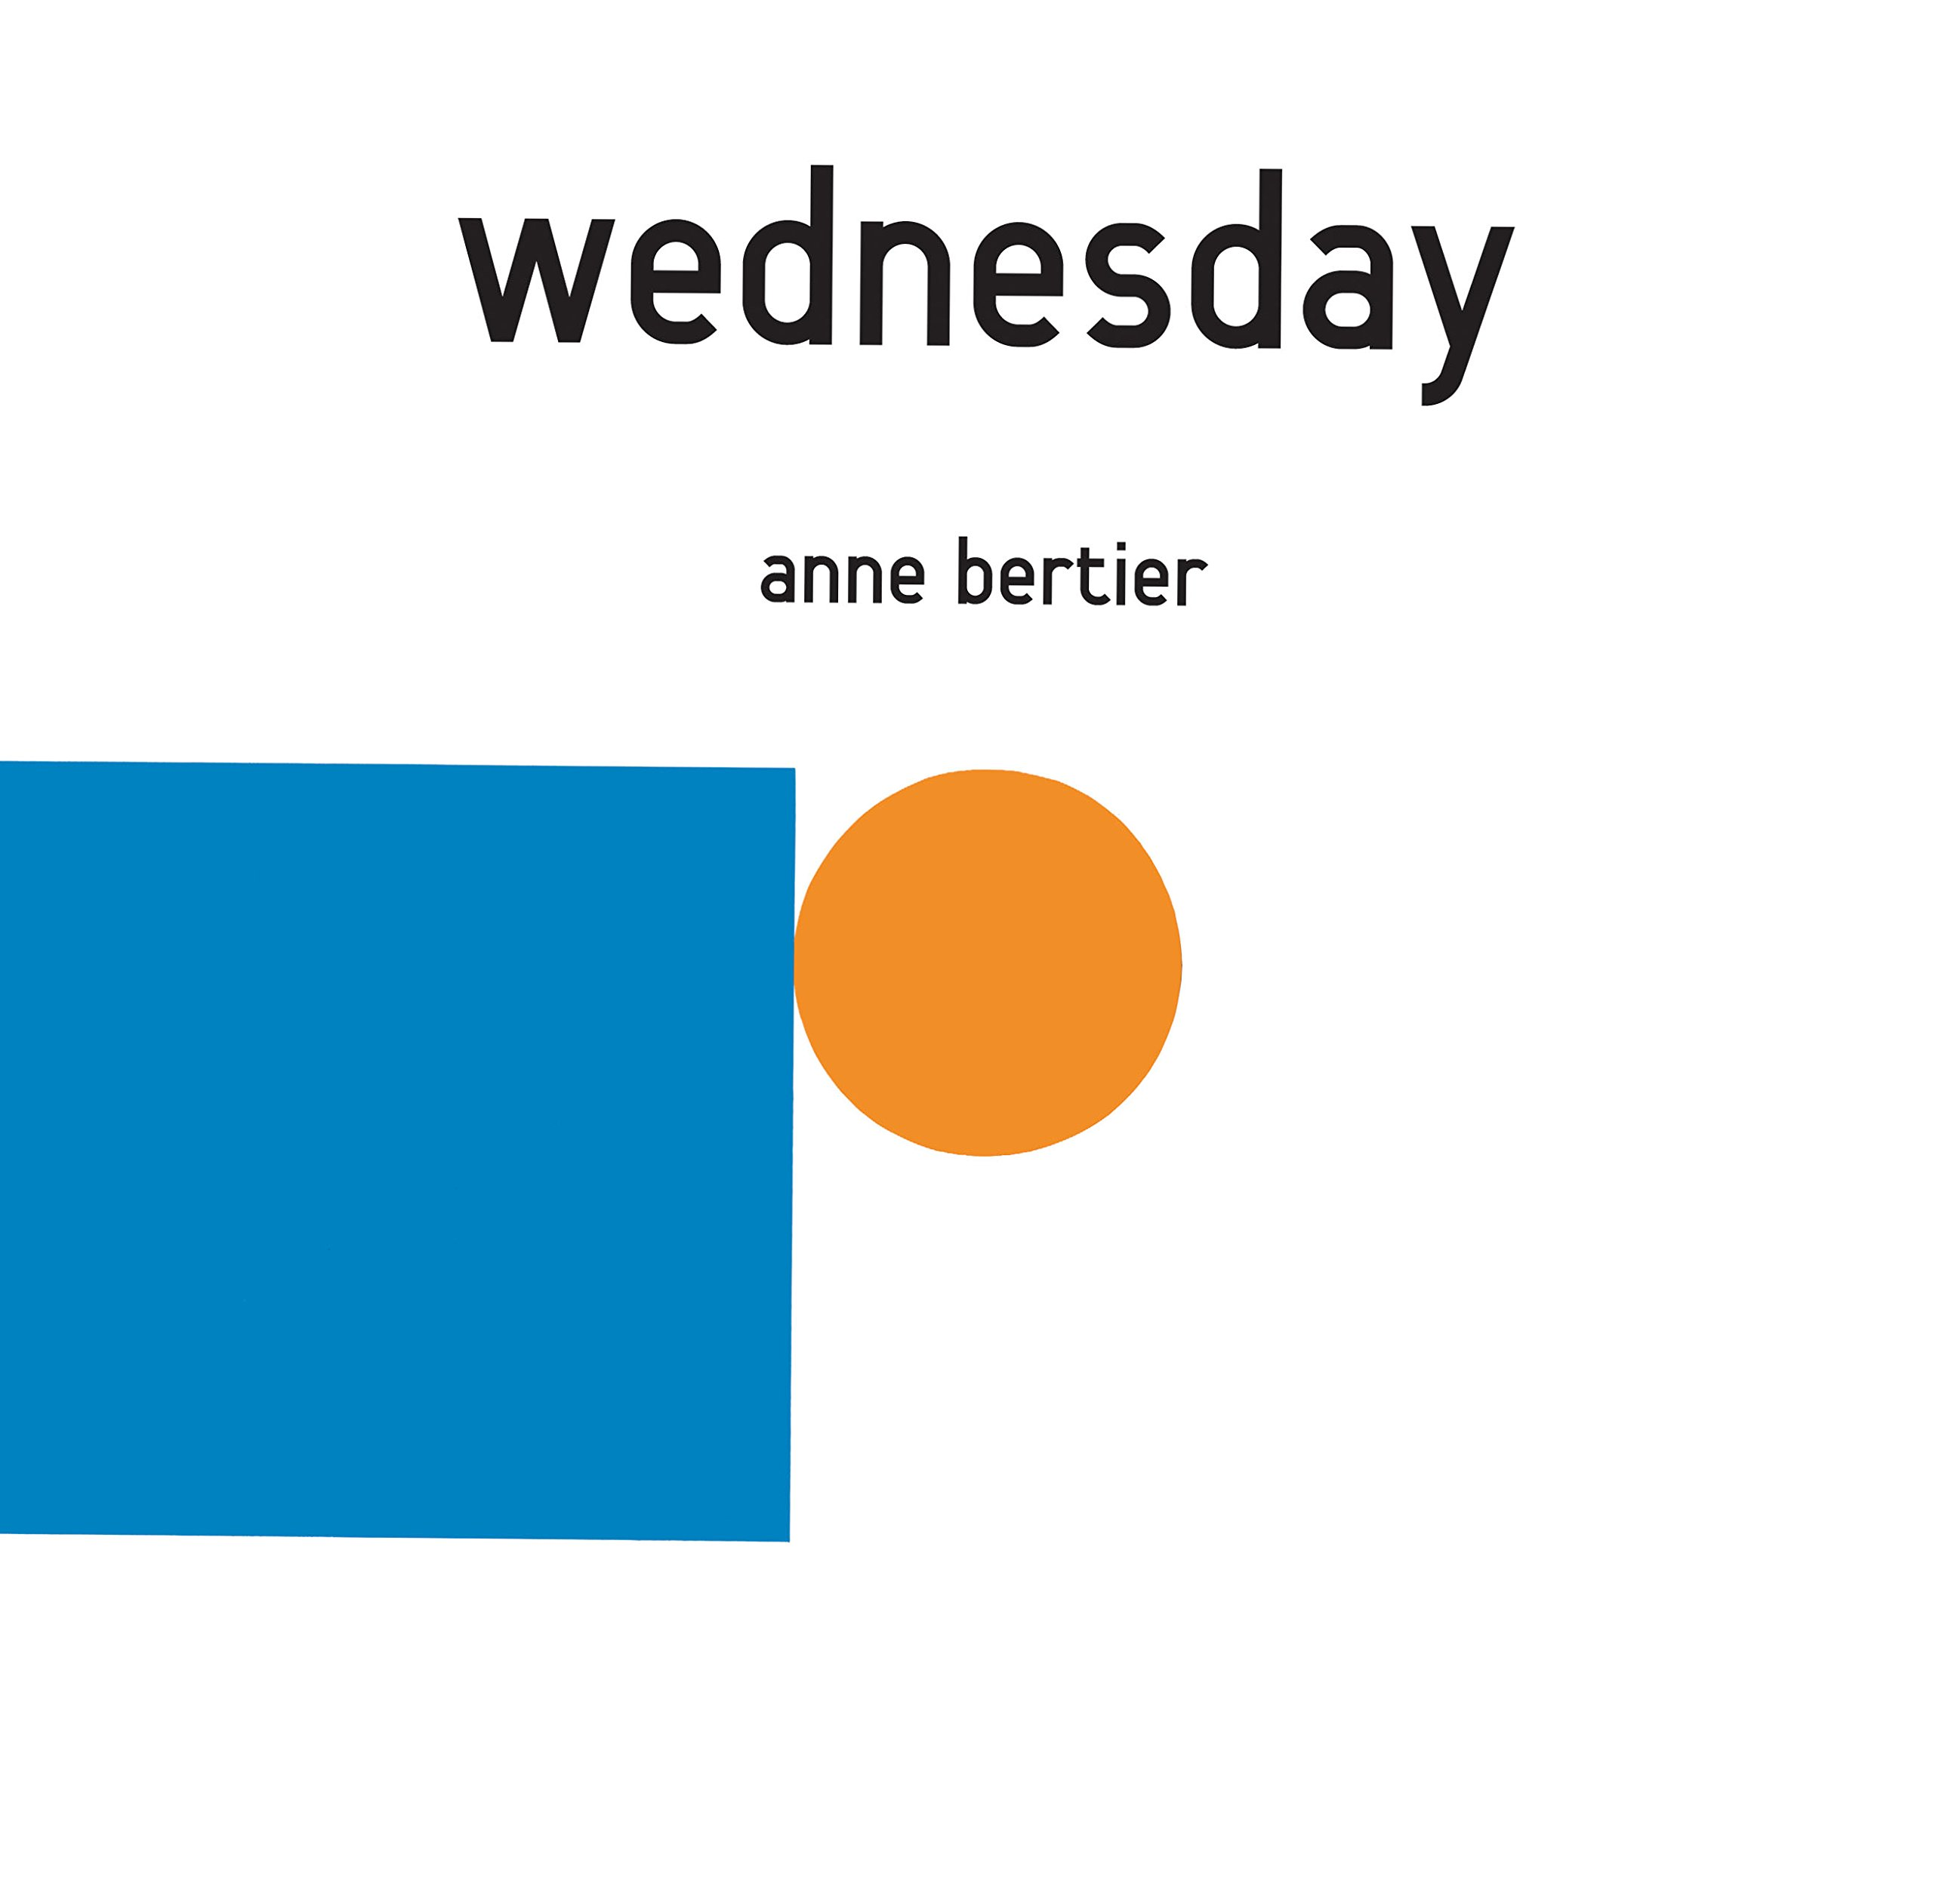 wednesday anne bertier 9781592701520 amazon com books